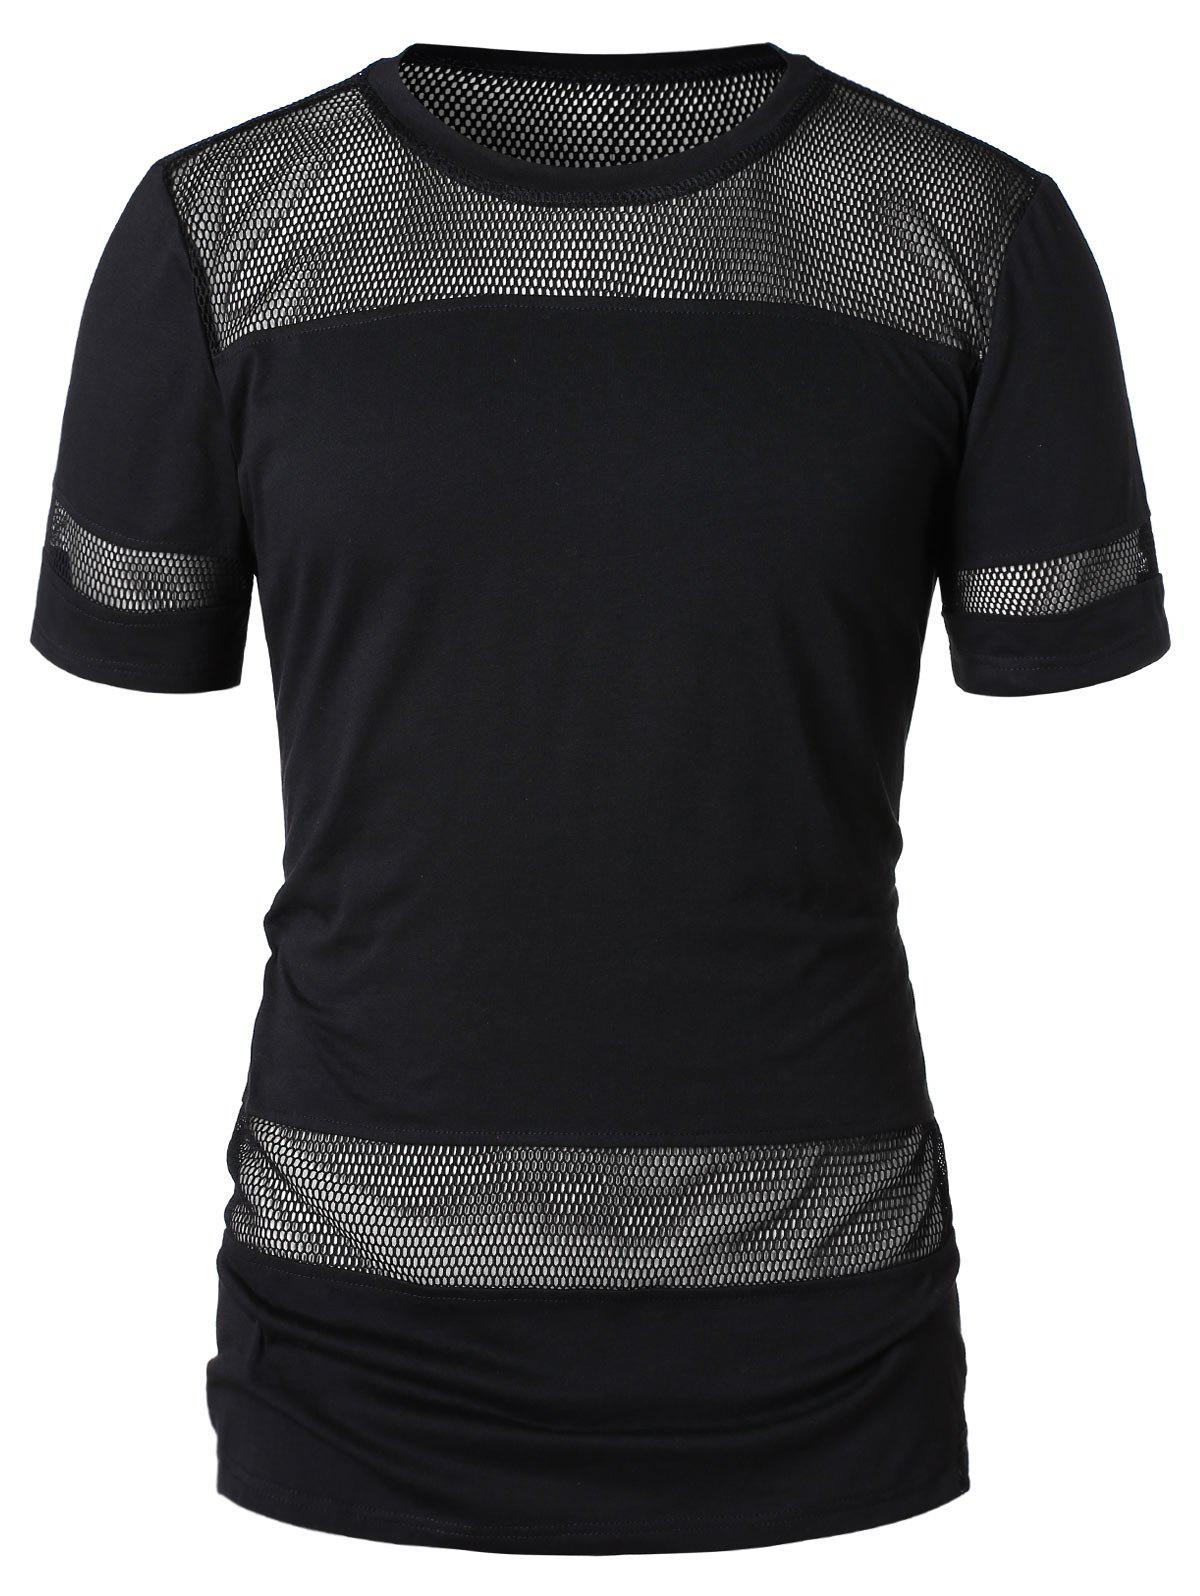 Trendy Short Sleeve Mesh Panel T-shirt